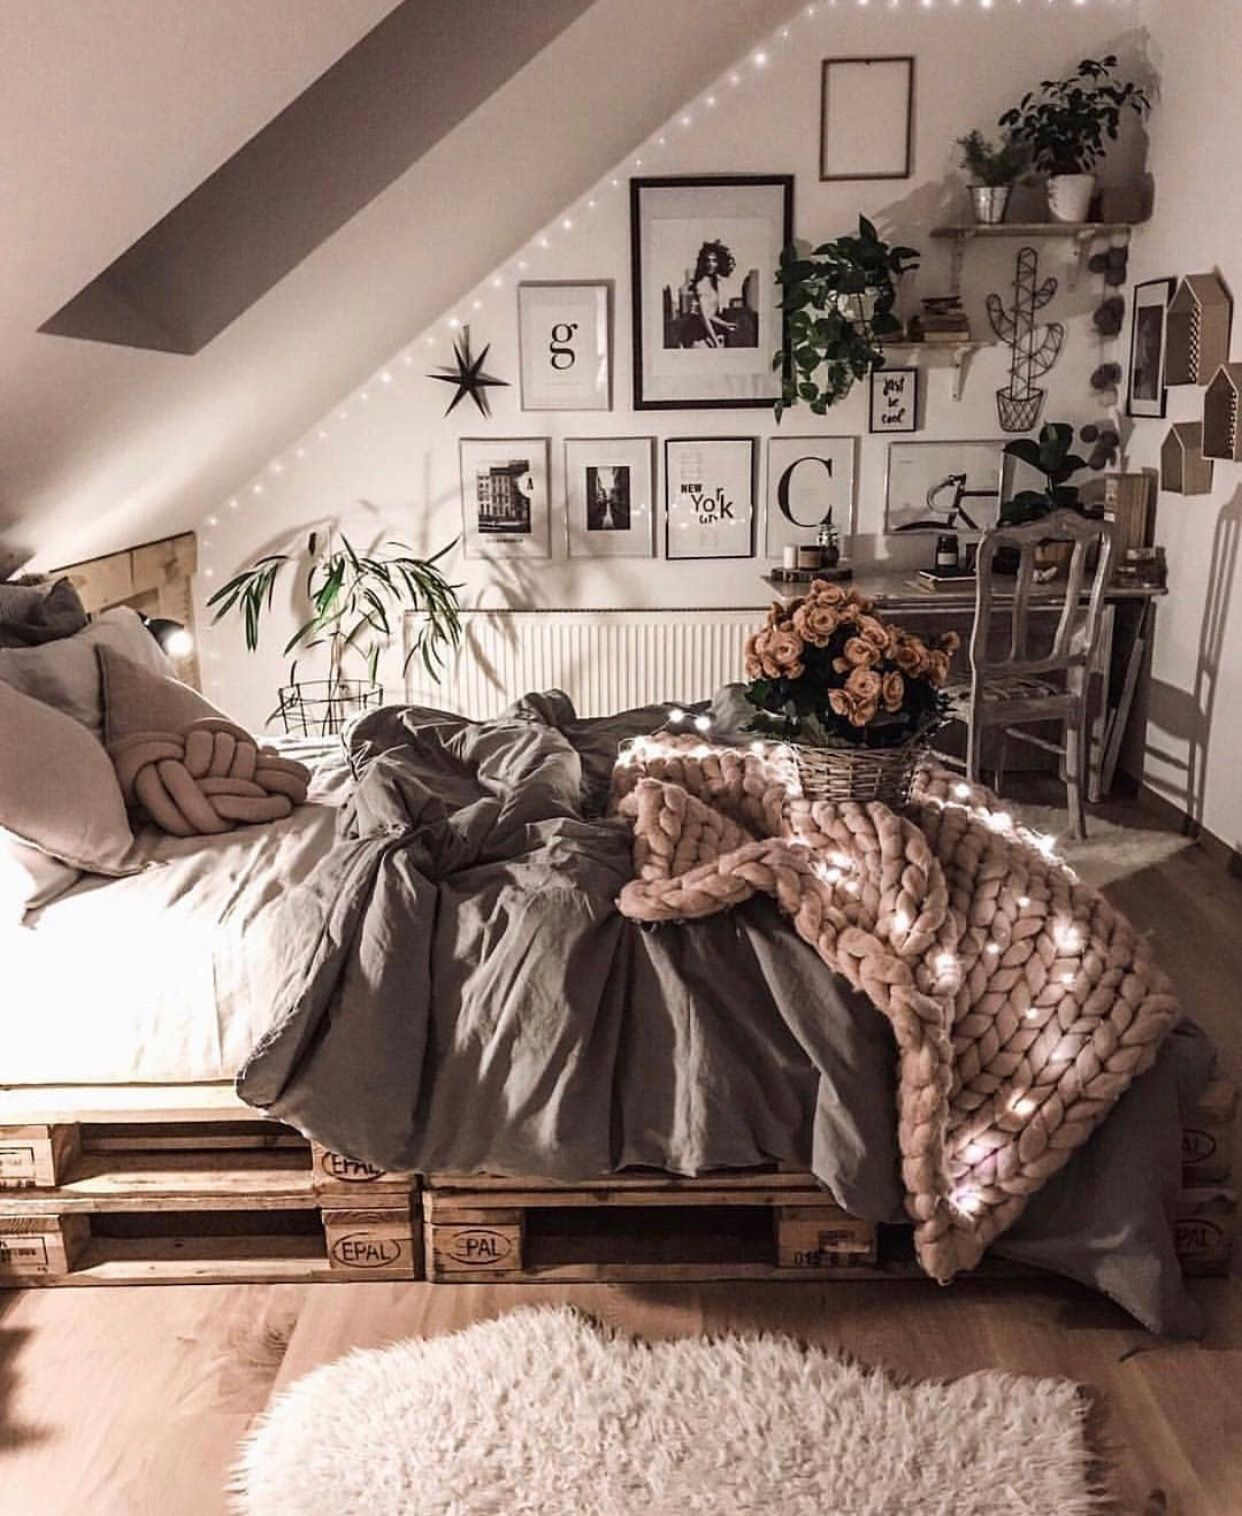 34+ Small Bedroom Ideas to Make Your Home Look Bigger images